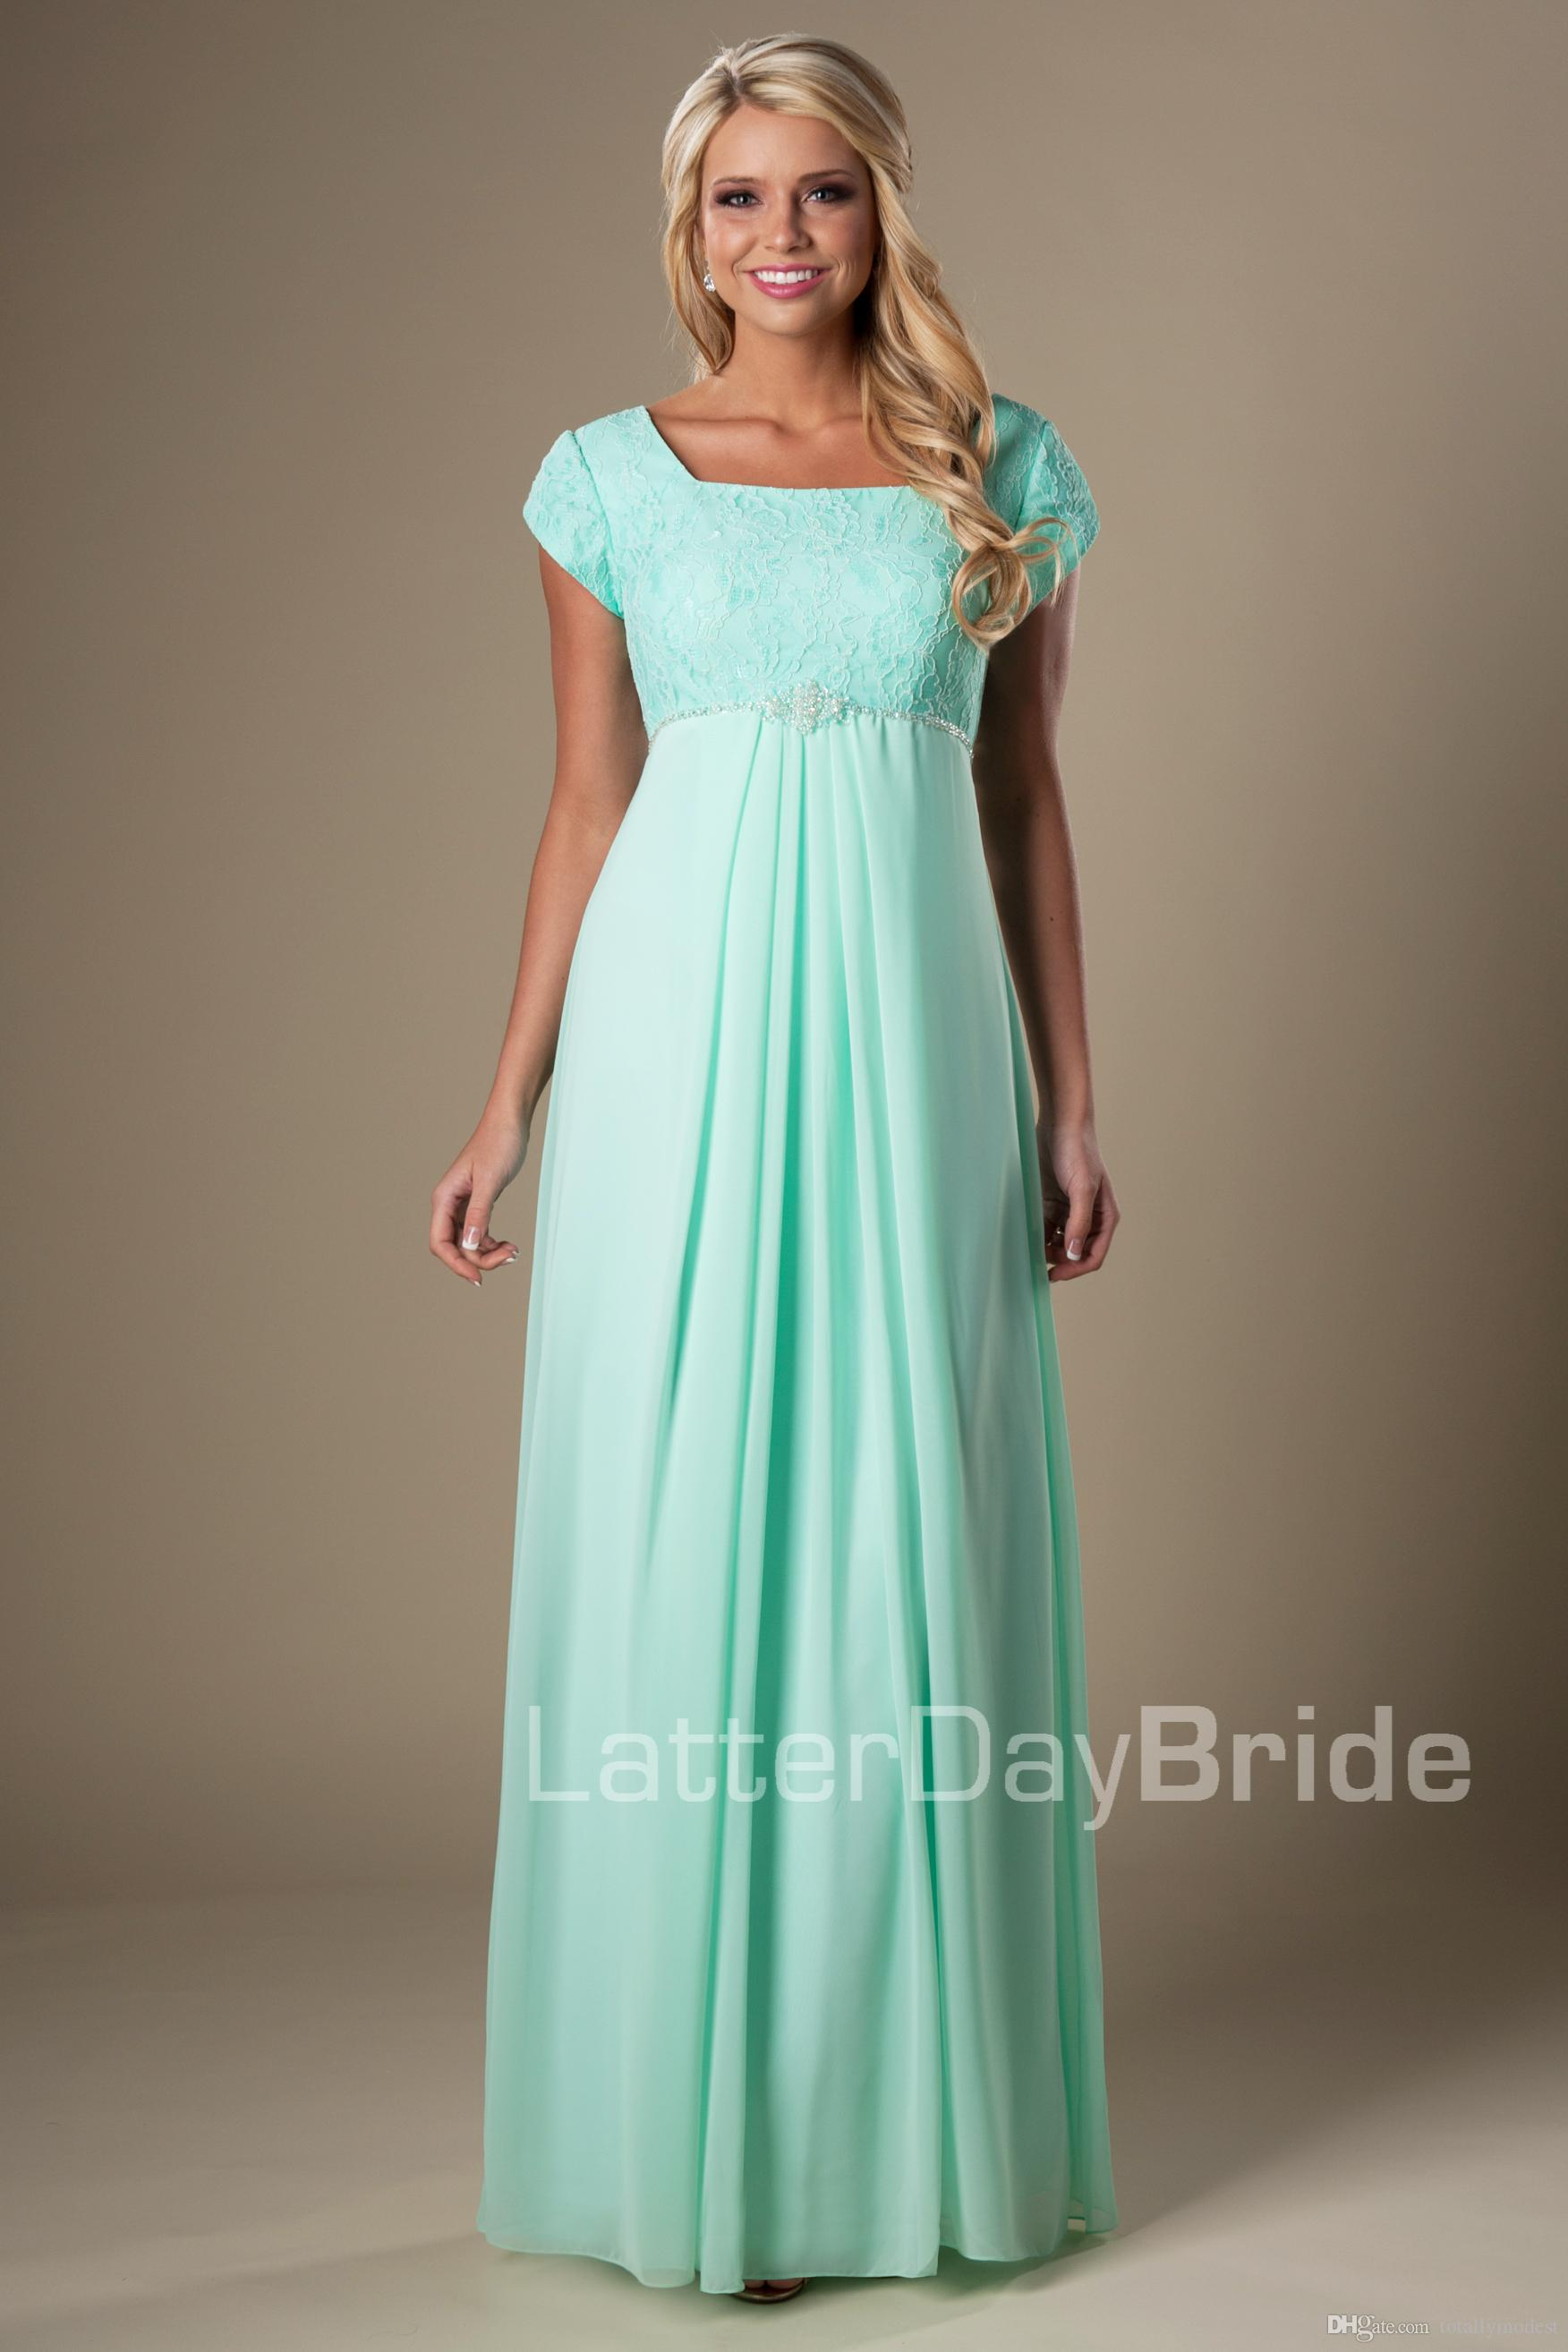 Mint Lace Chiffon Maternity Modest Bridesmaid Dresses Long With Cap ...